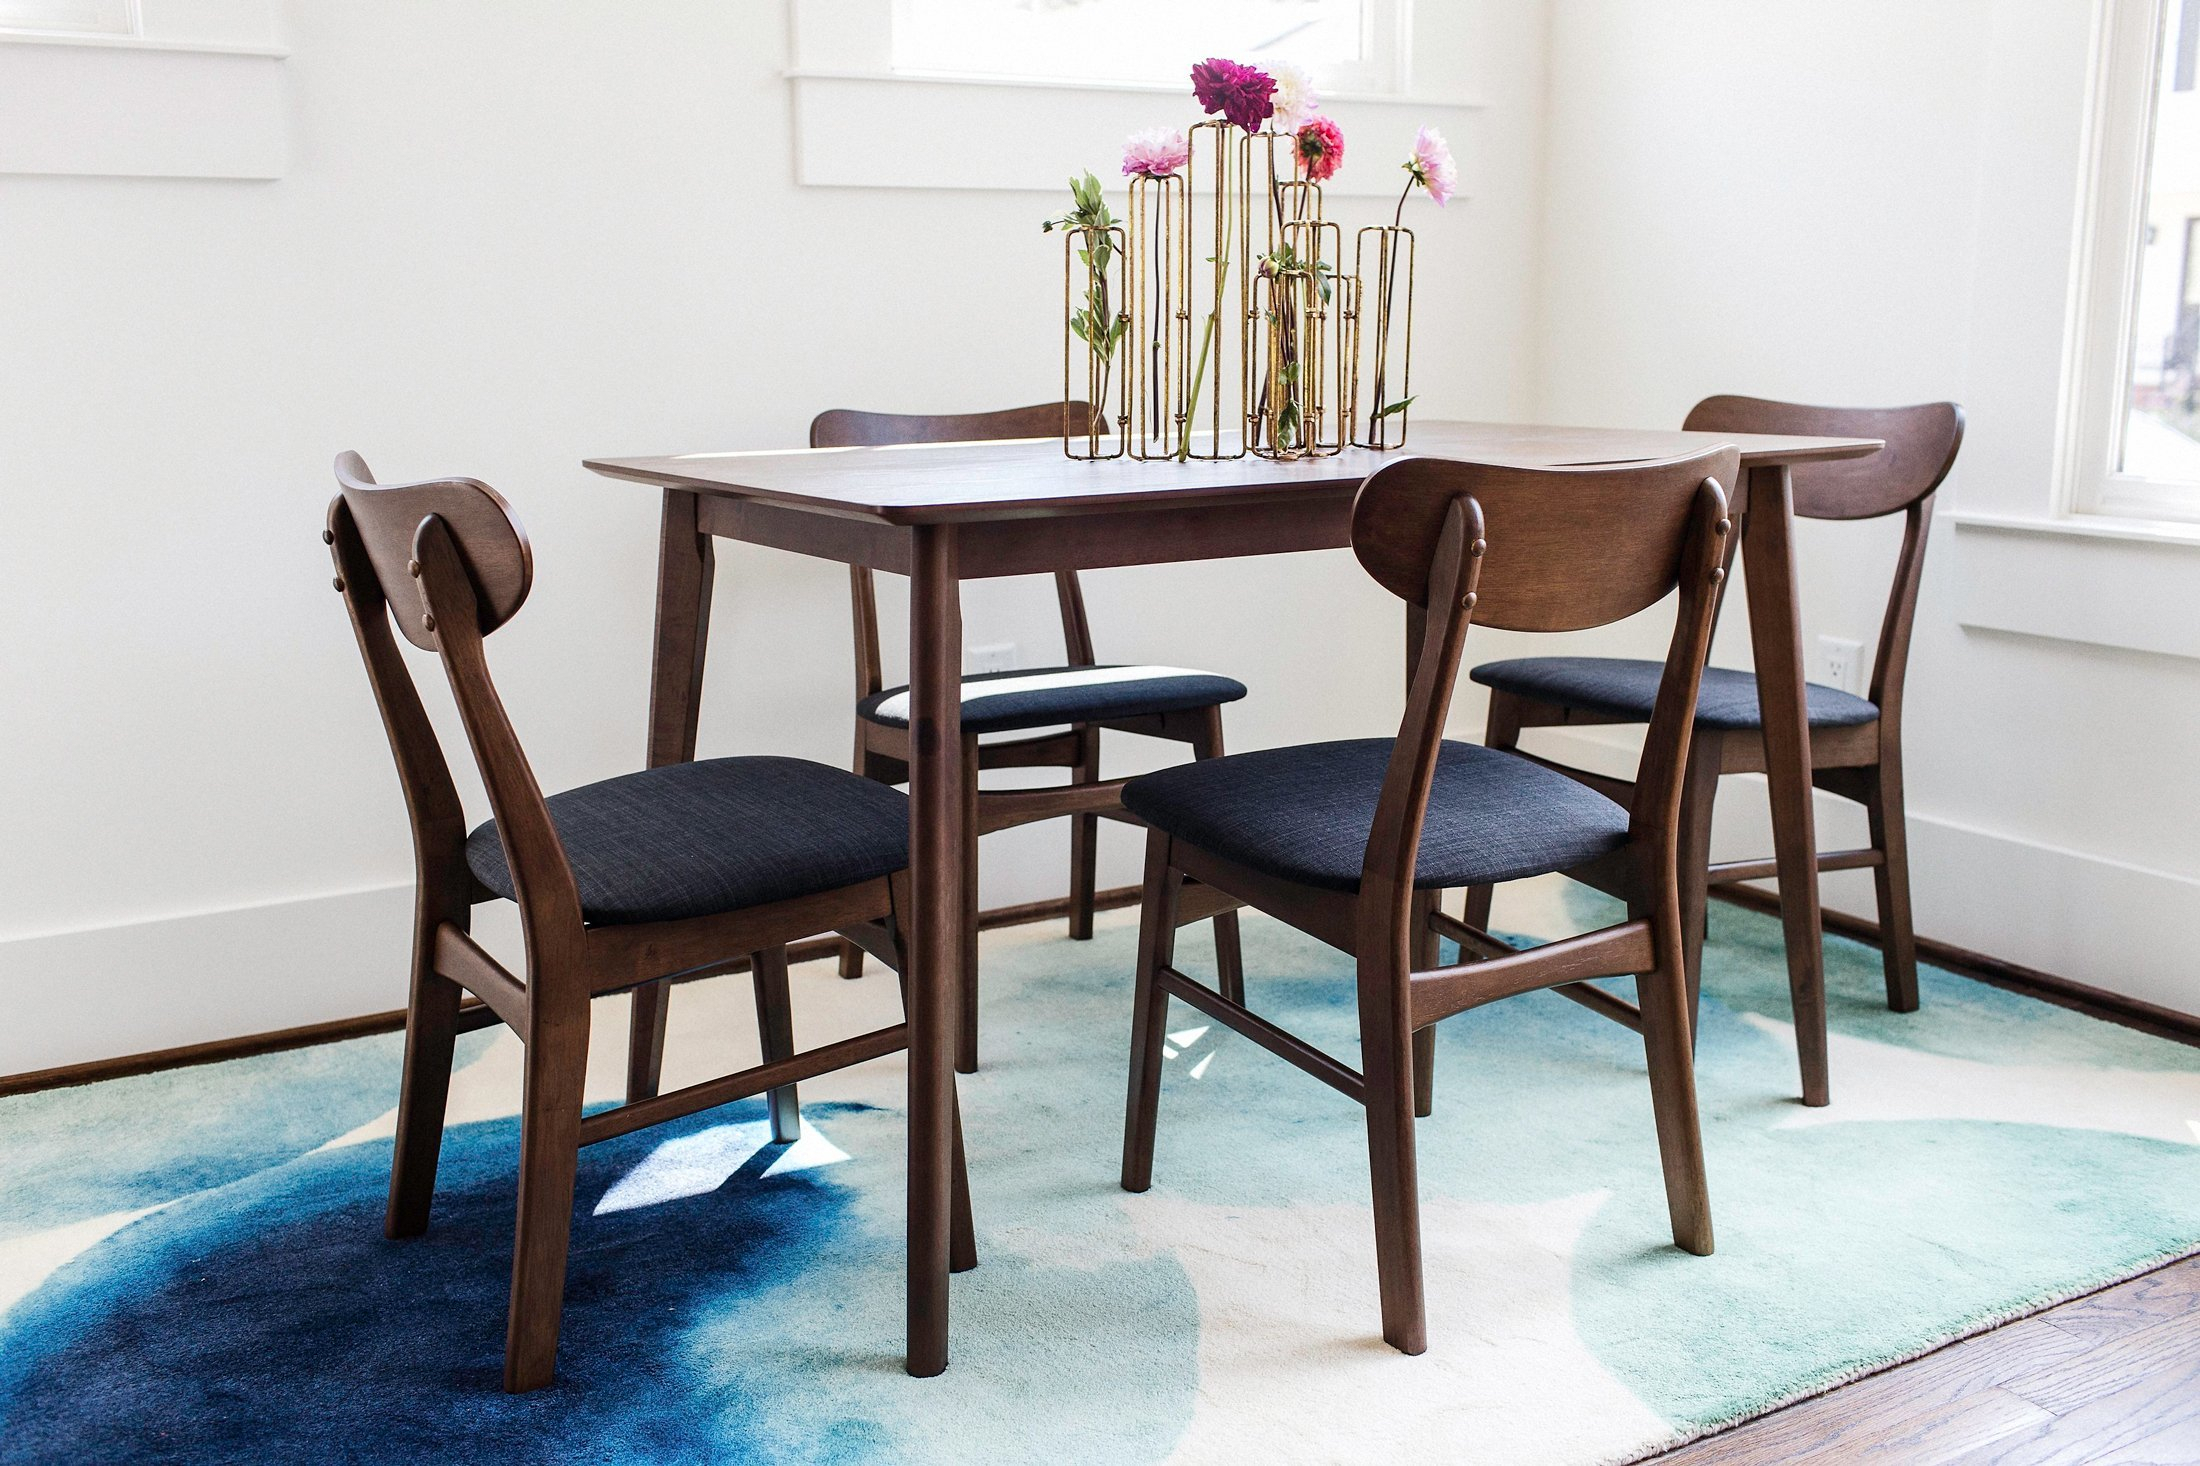 Fashionable 5 Piece Breakfast Nook Dining Sets Within George Oliver Velazquez 5 Piece Breakfast Nook Dining Set & Reviews (#5 of 20)